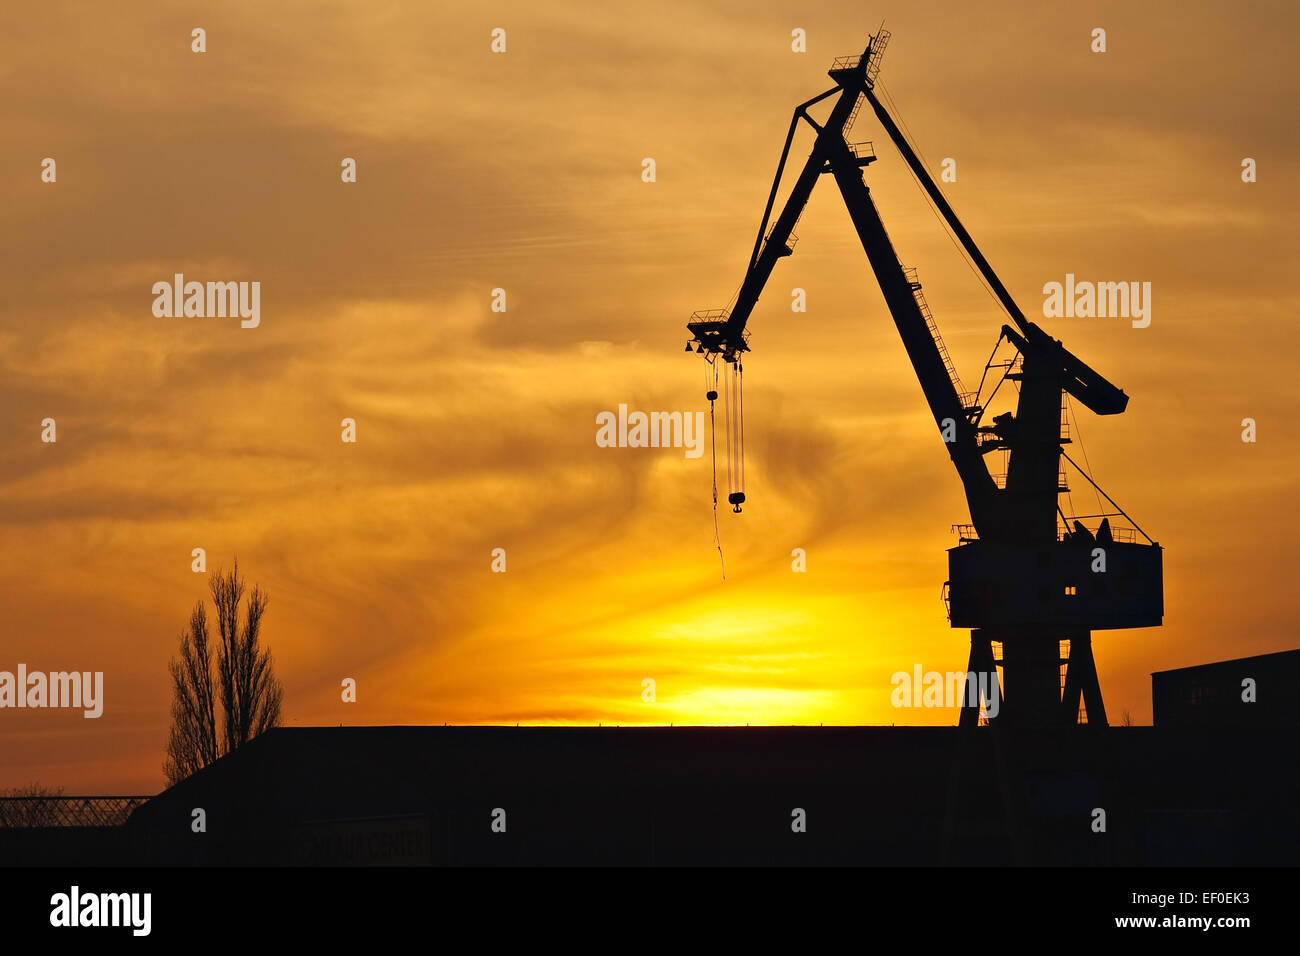 Port crane in the sunset. - Stock Image